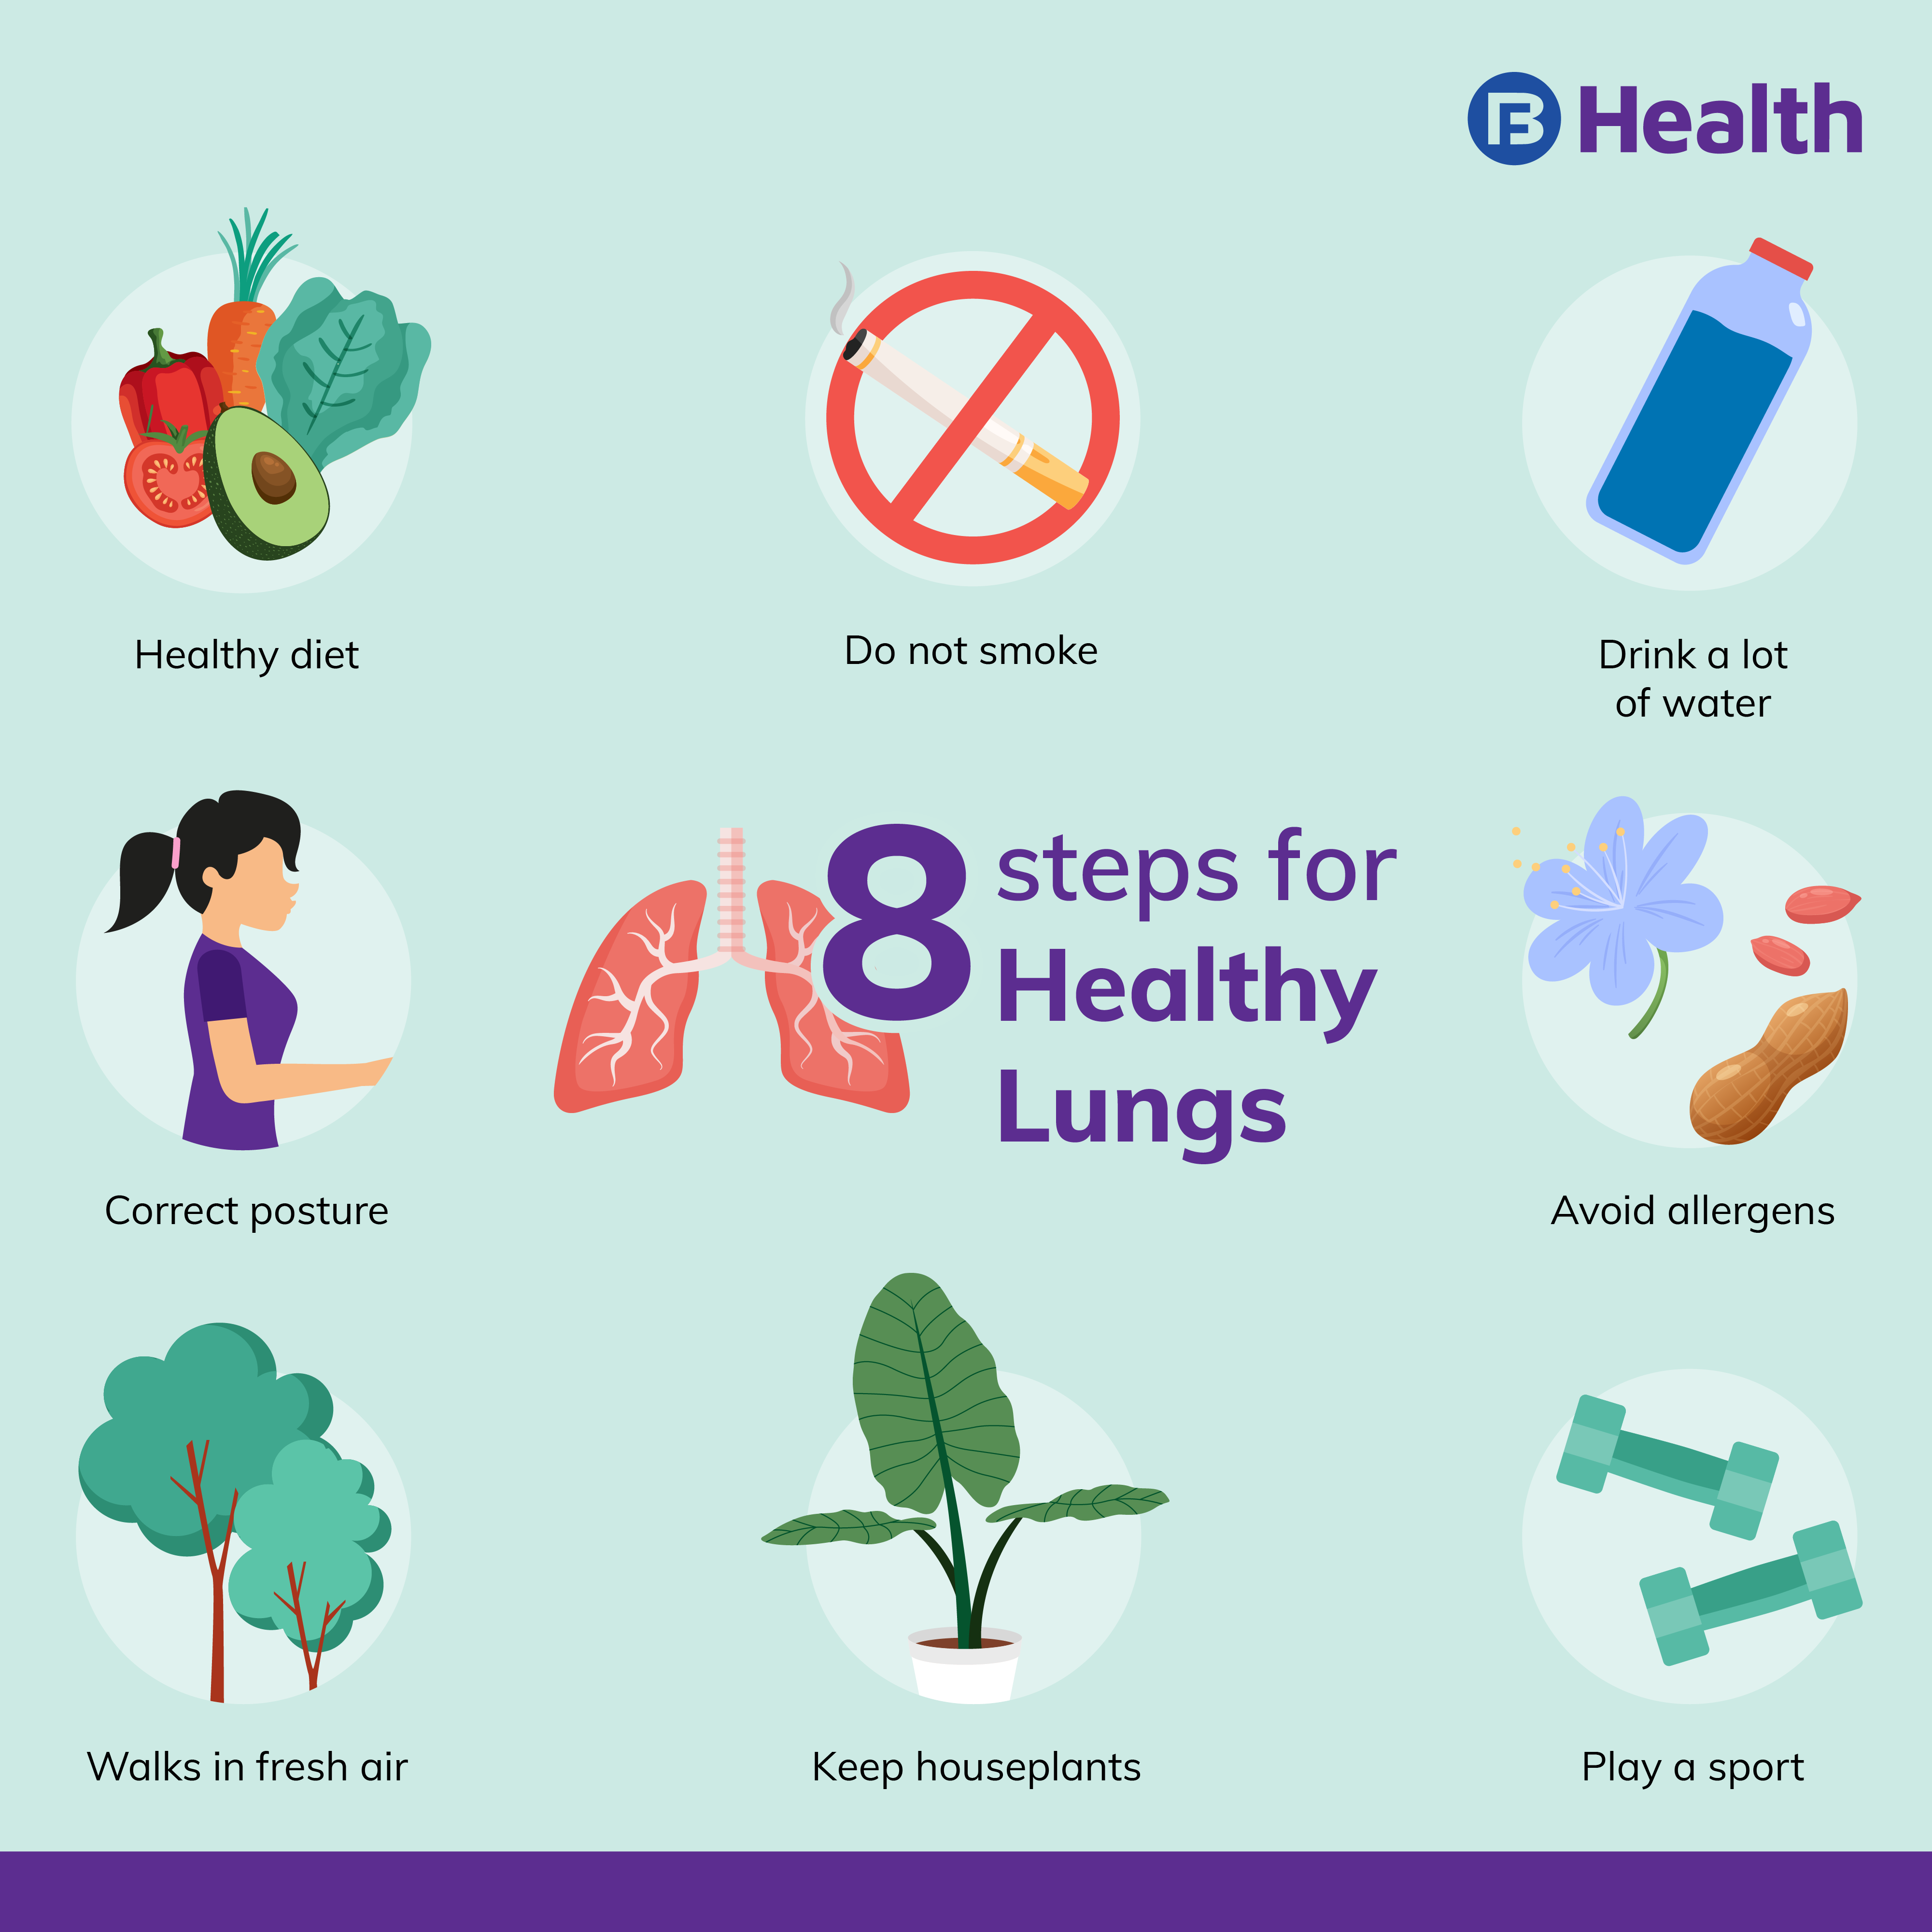 Steps to Healthy Lungs